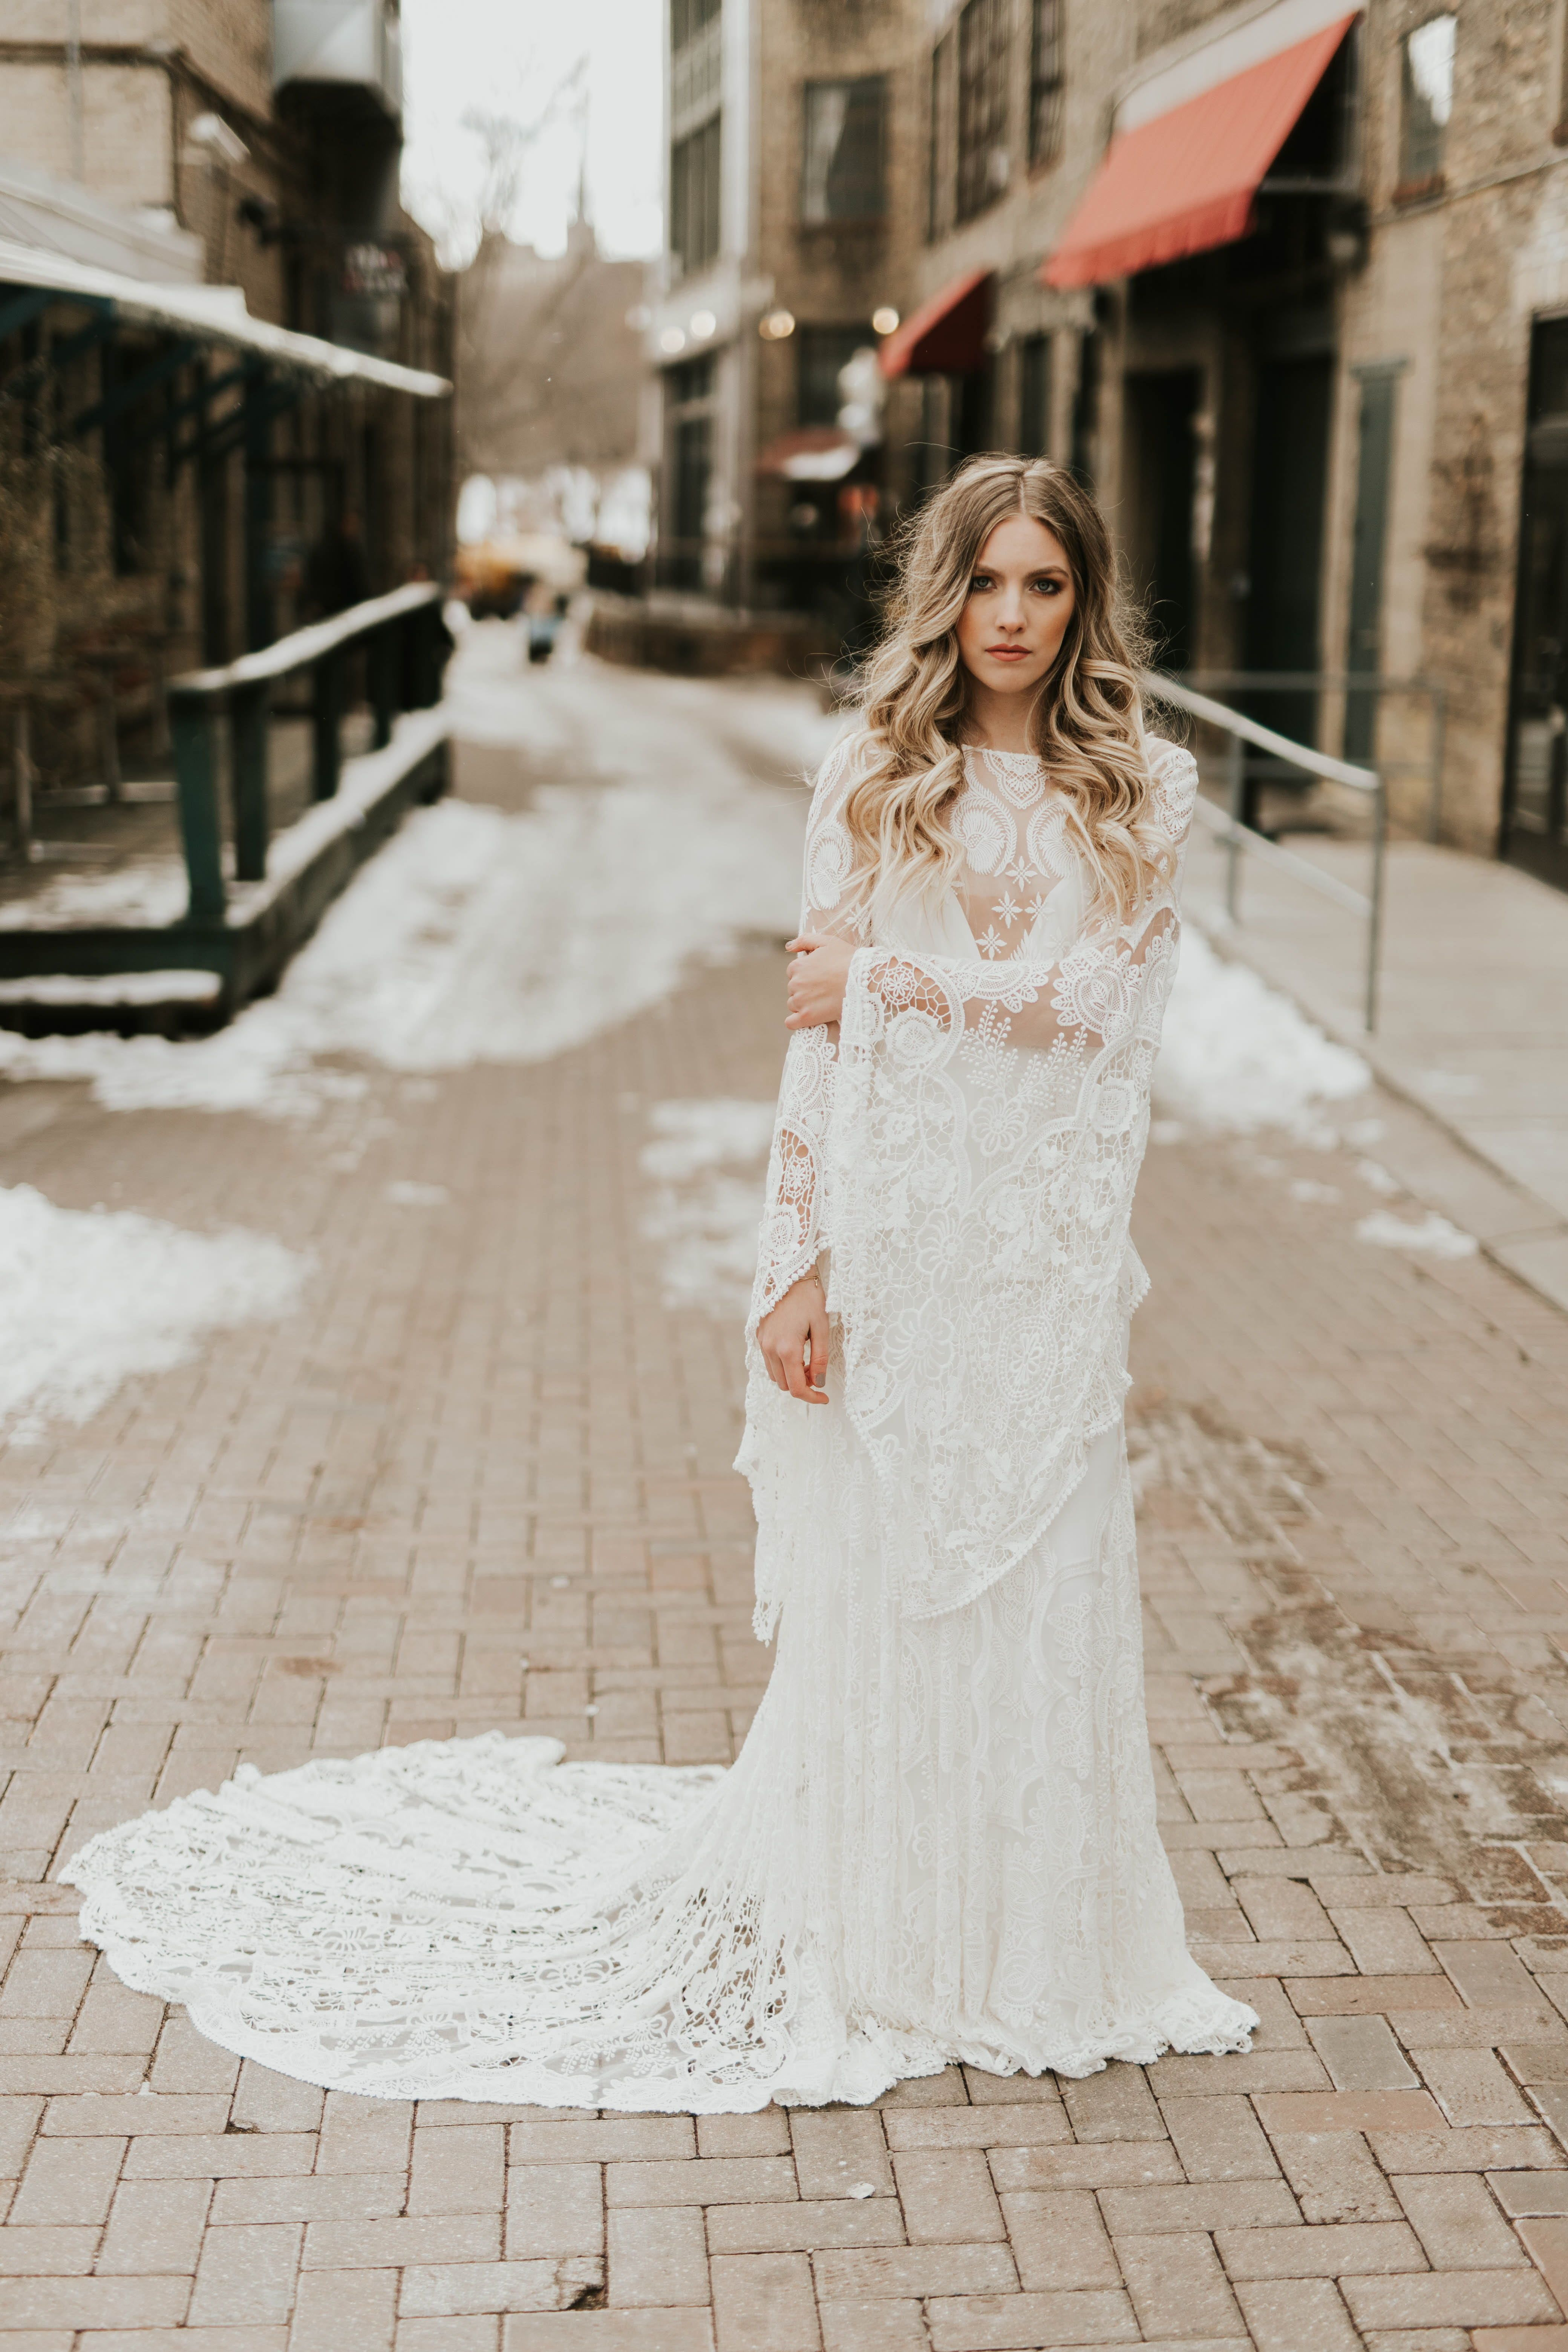 Sia By Rue De Seine Available At Minneapolis Dallas Denver Miami A Be Bridal Shop Lace Top Wedding Dress Wedding Dress Low Back Different Wedding Dresses